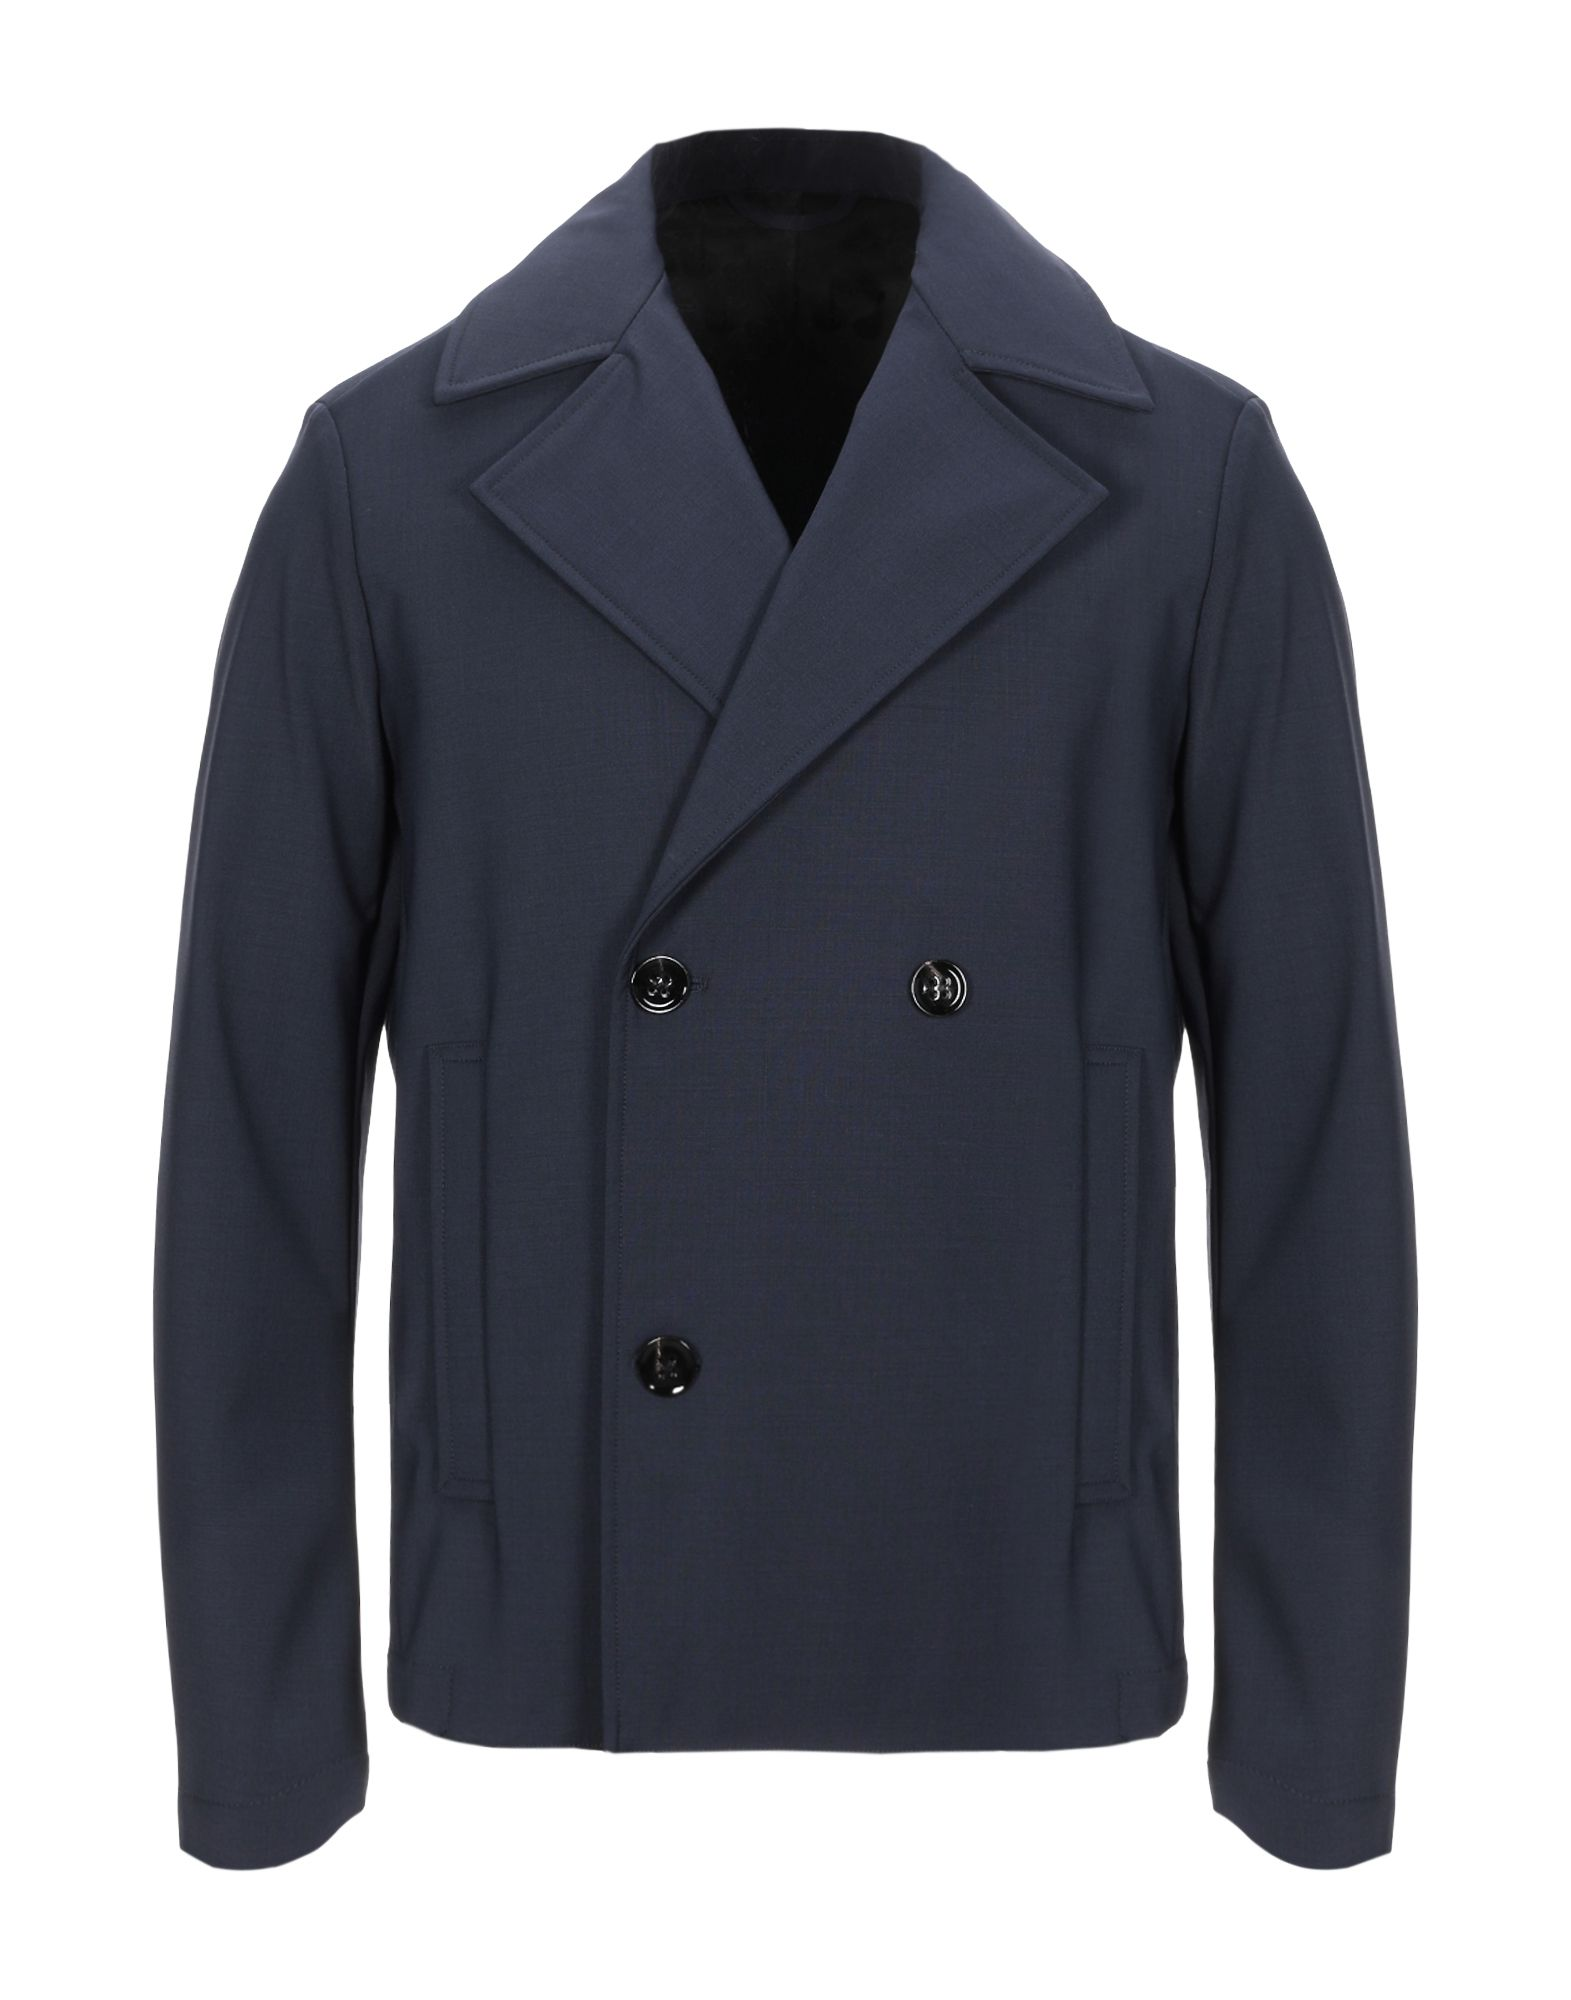 DONDUP Coats. plain weave, no appliqués, solid color, double-breasted, button closing, lapel collar, multipockets, one inside pocket, long sleeves, unlined, stretch. 55% Wool, 41% Polyester, 4% Elastane